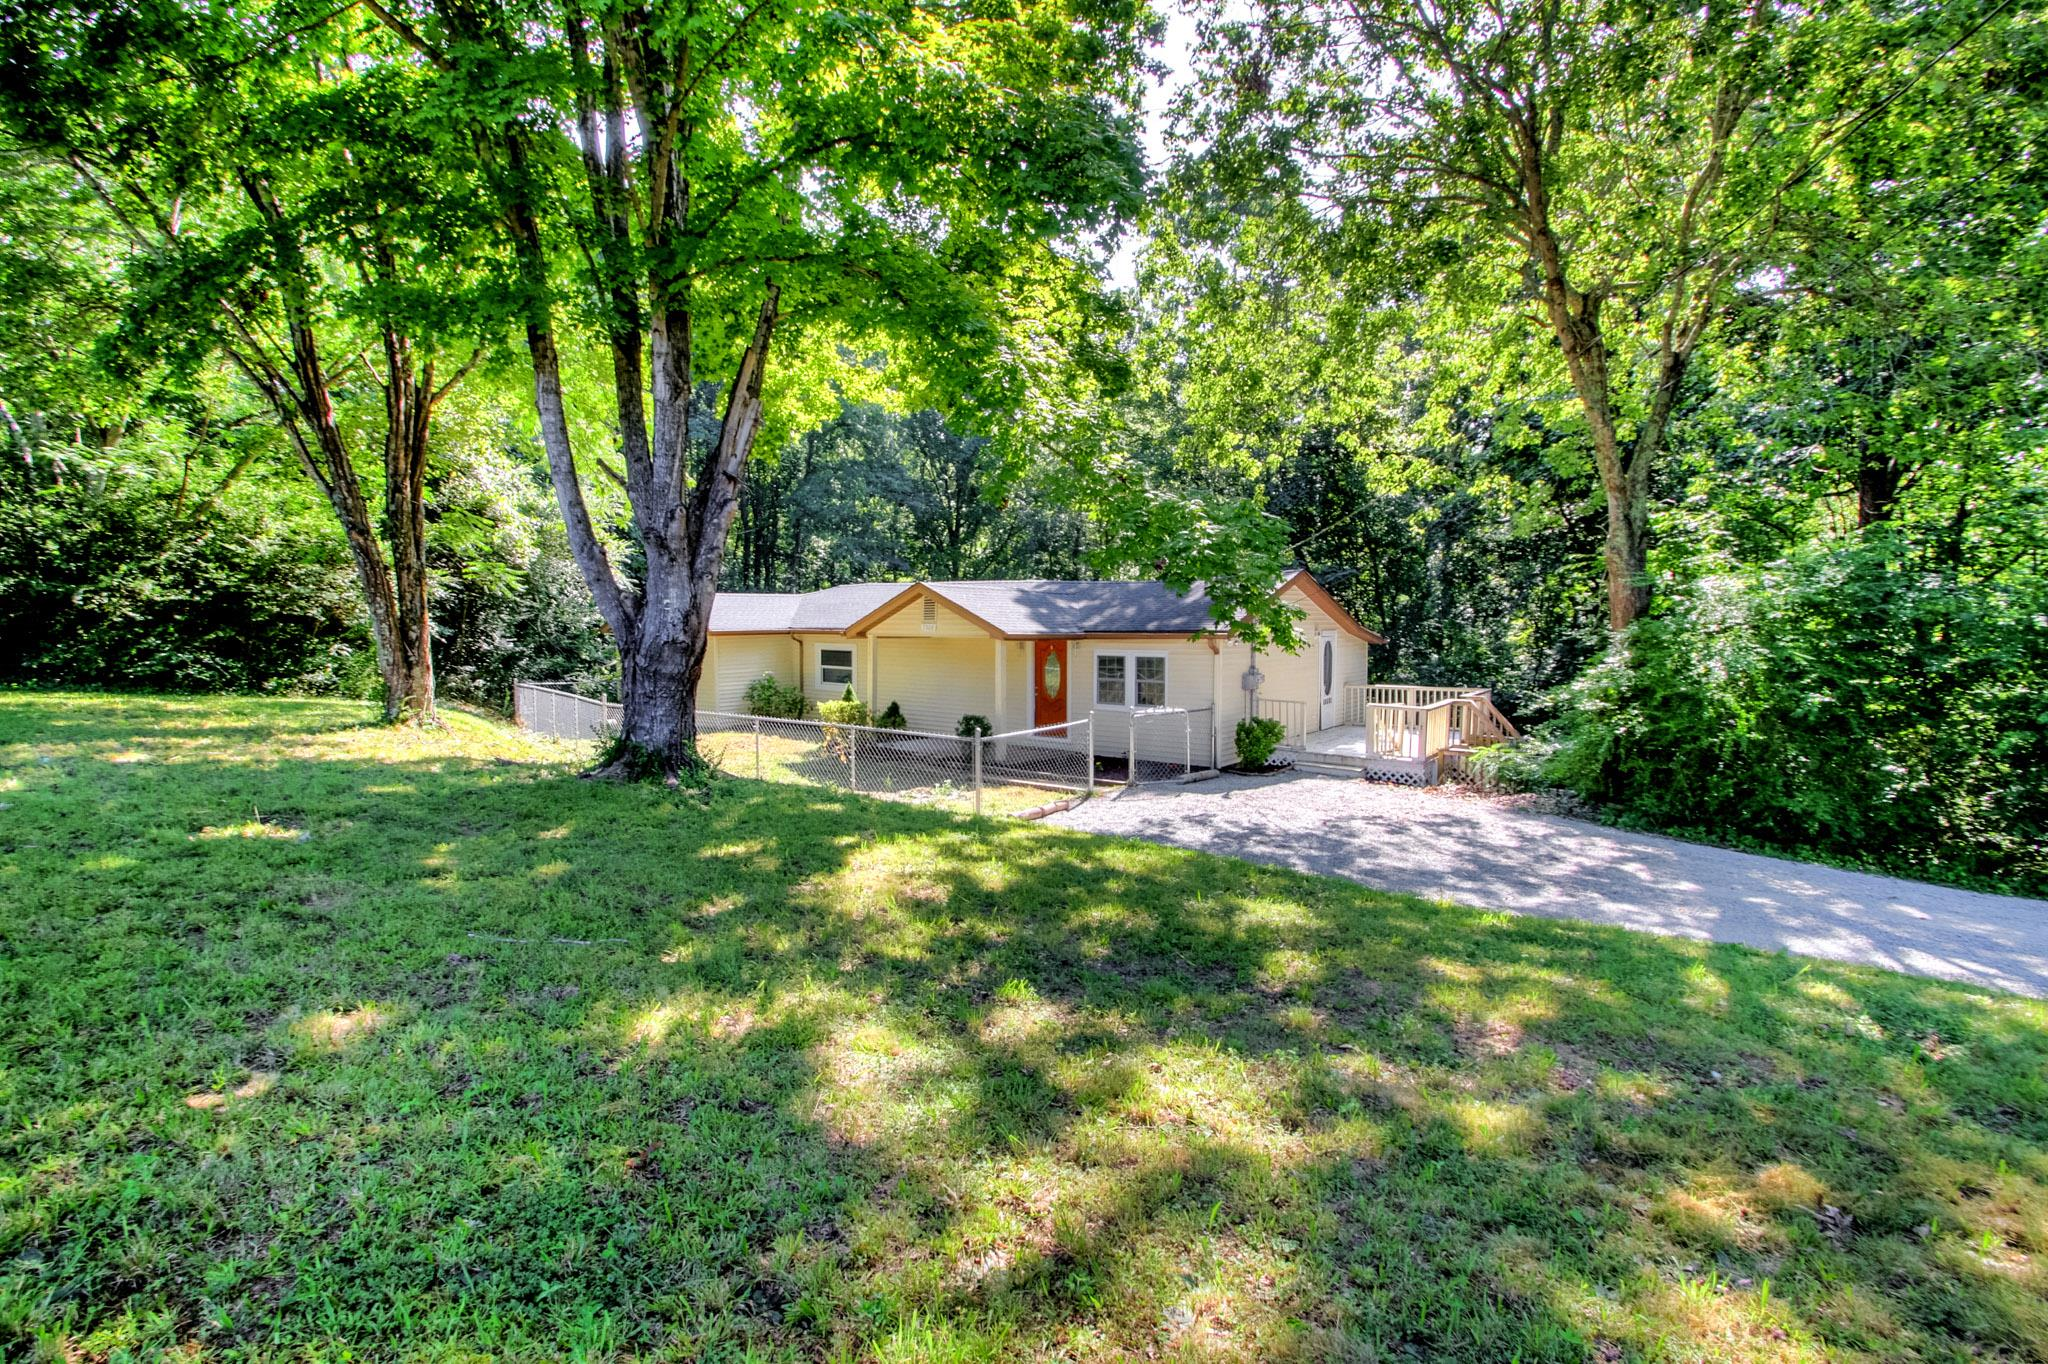 7300 Henderson Dr, Fairview in Williamson County County, TN 37062 Home for Sale